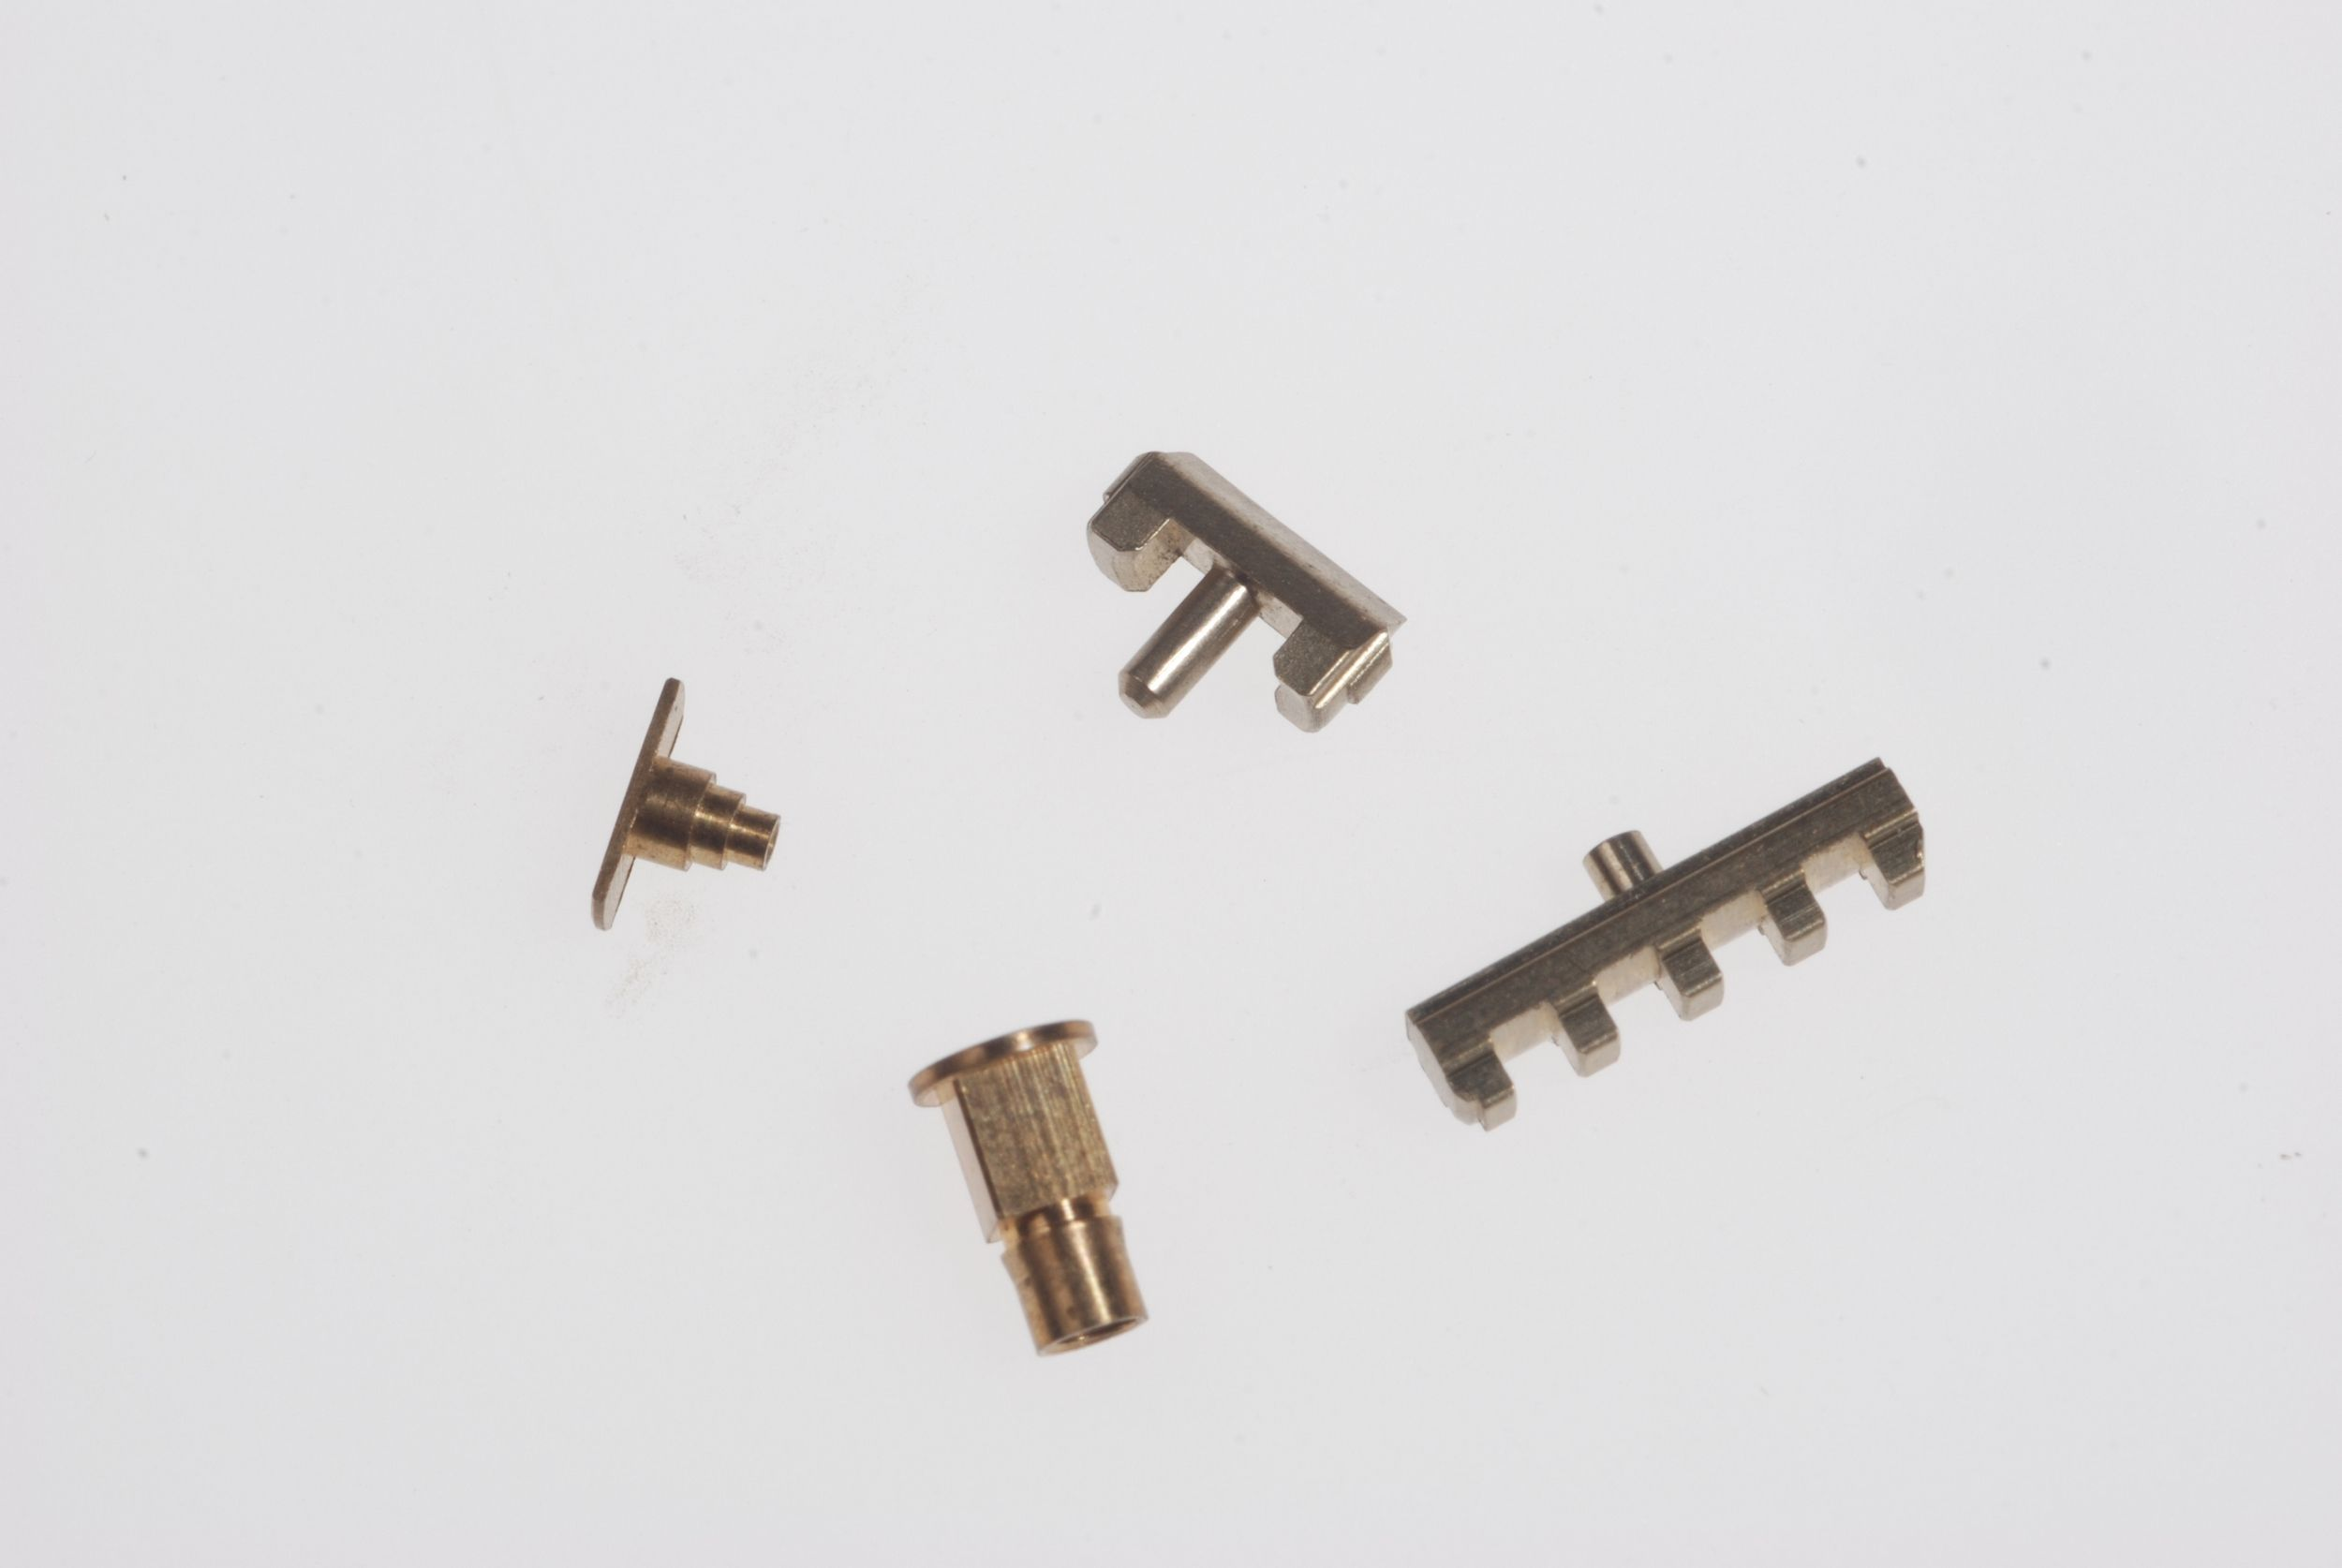 Machining precision locksmith parts